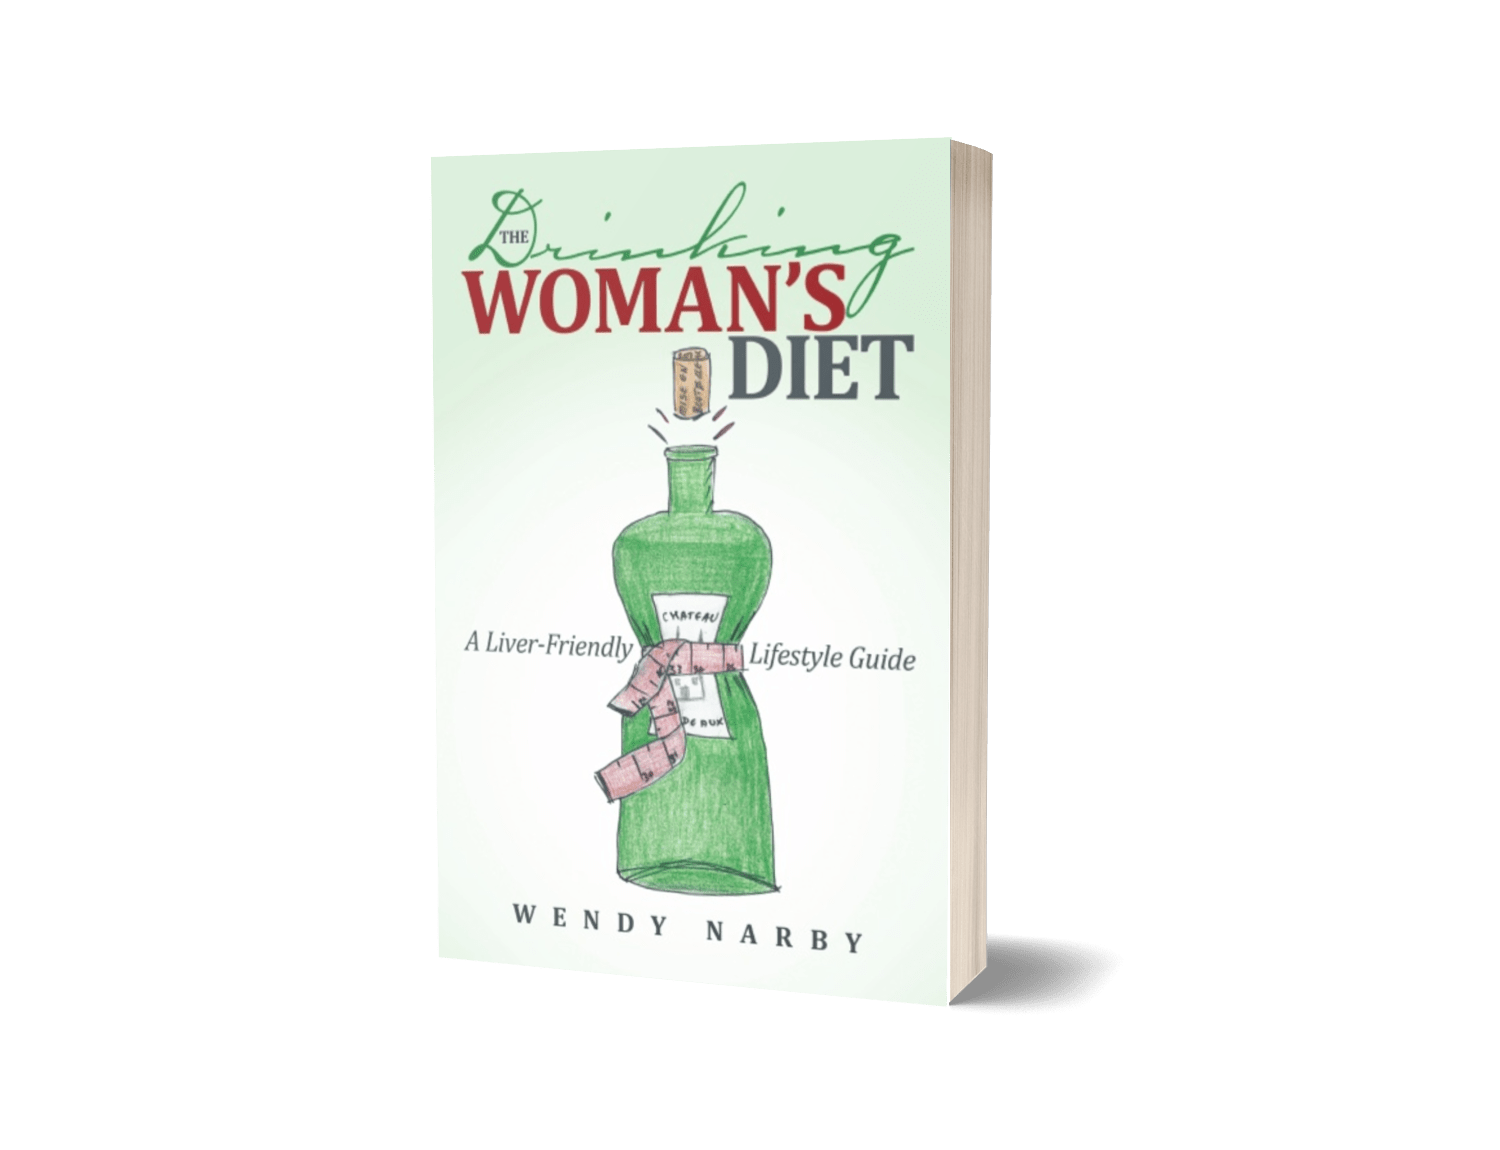 The Drinking Woman's Diet: A Liver-Friendly Lifestyle Guide